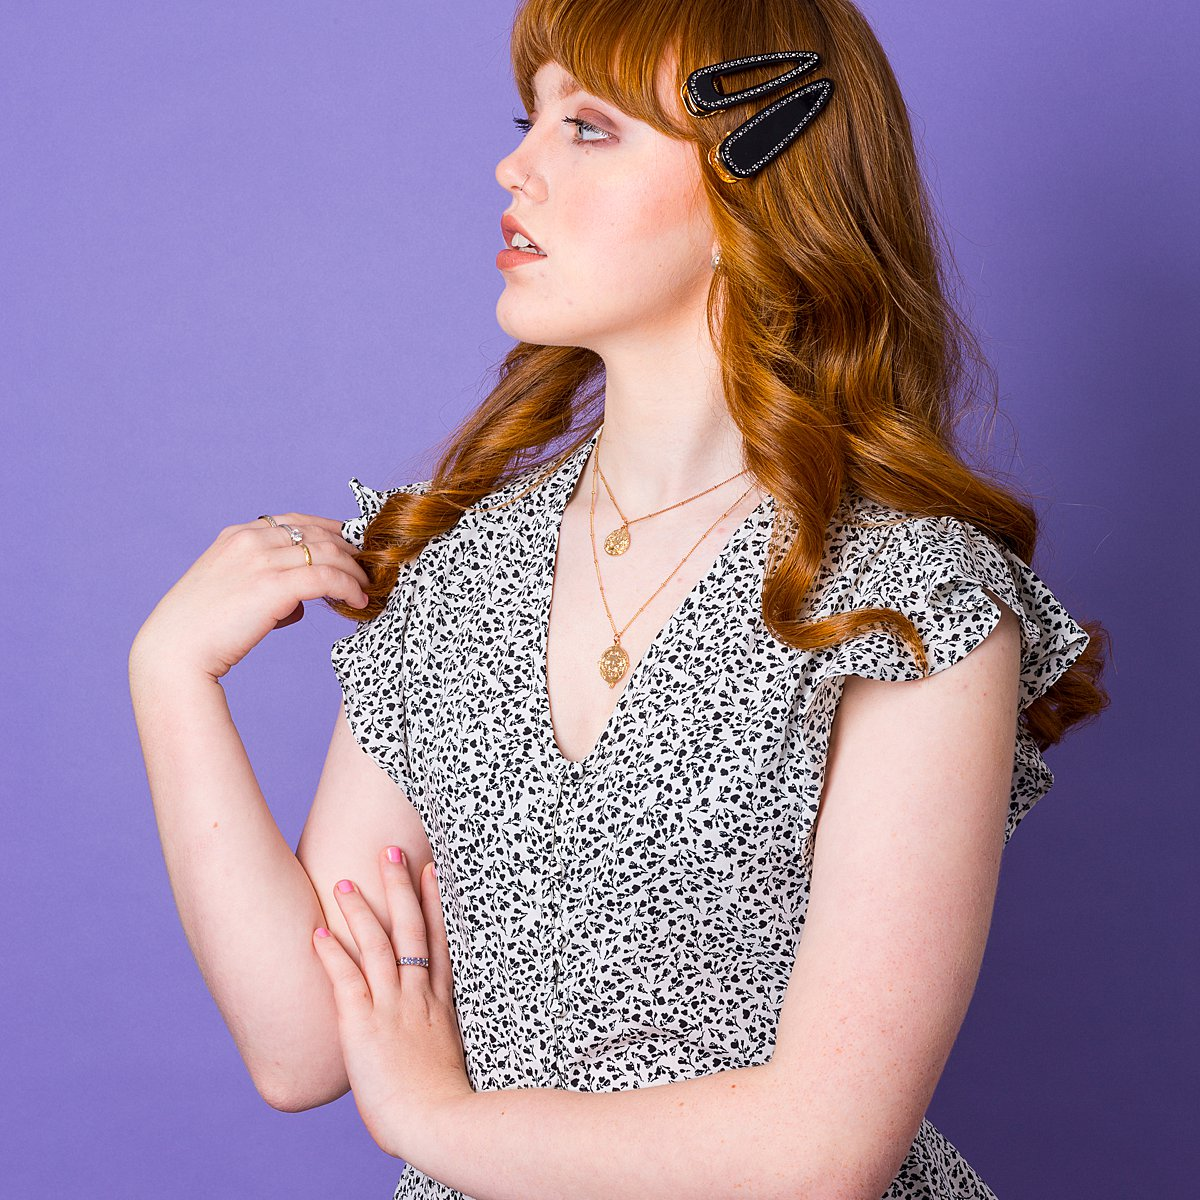 Colourful content creation for Crown & Glory hair accessories. AW19 product photography by Marianne Taylor.